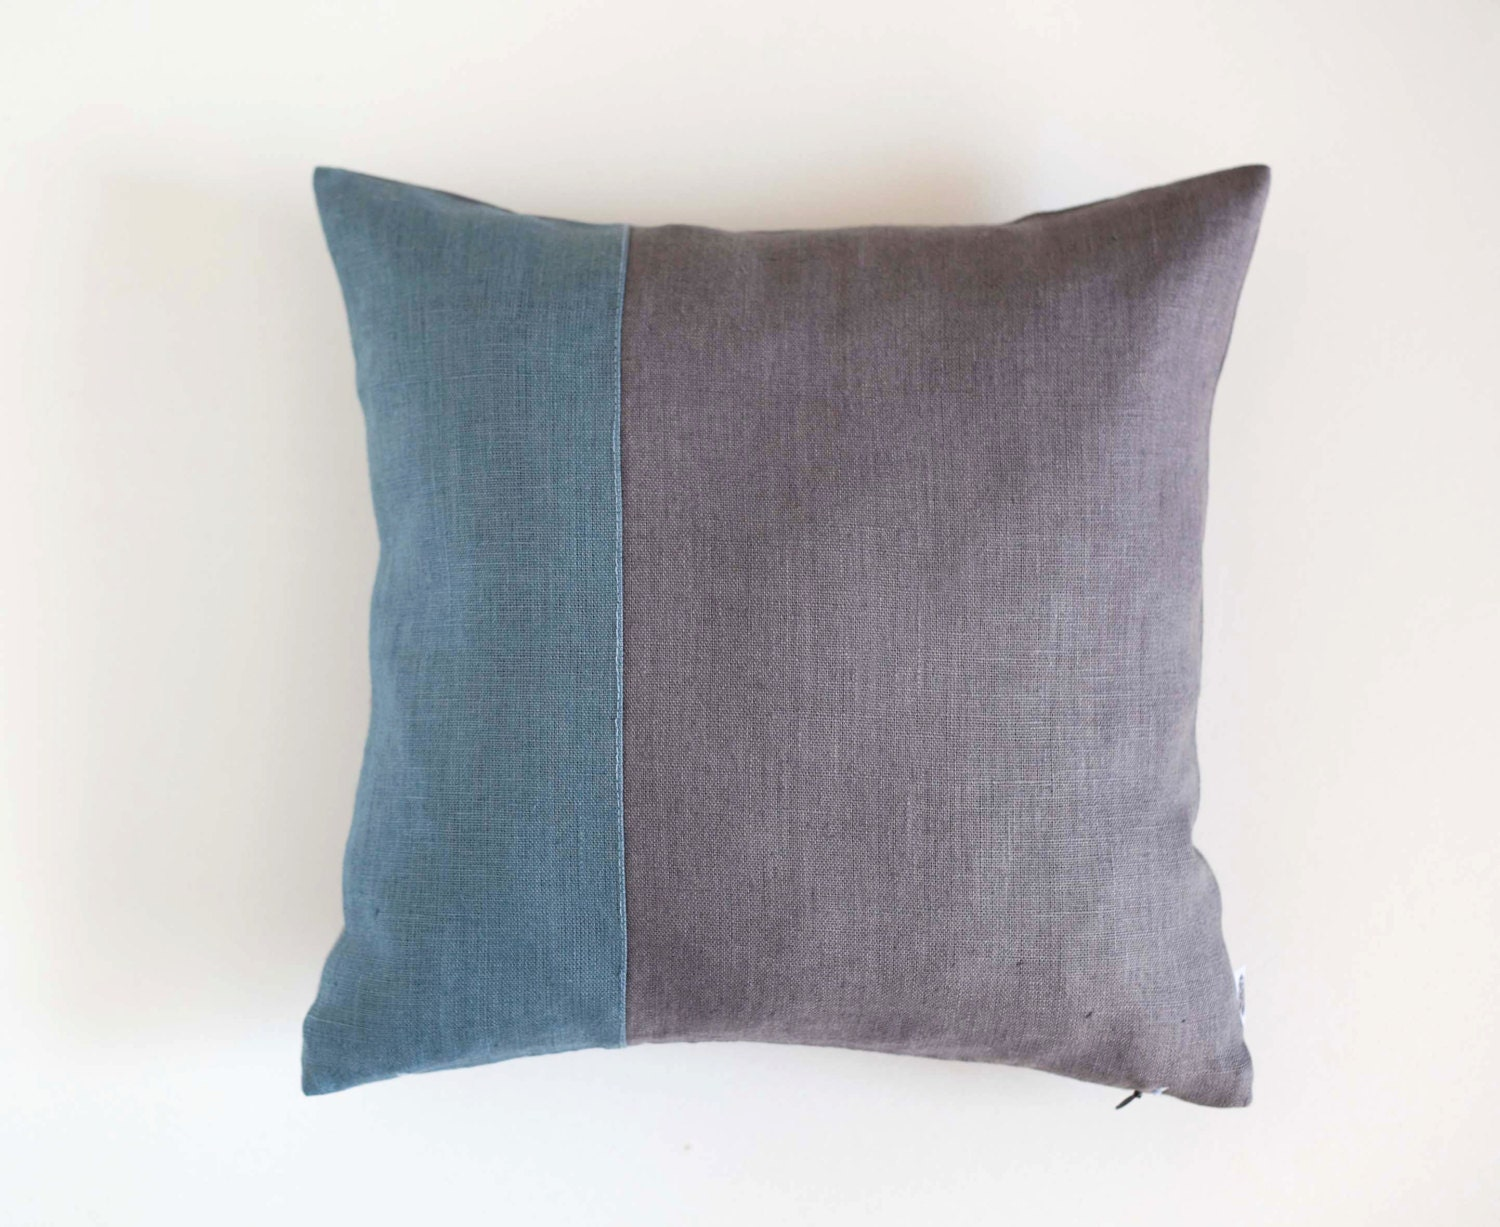 Dusty Blue Decorative Pillows : Throw pillow dusty blue with gray background decorative